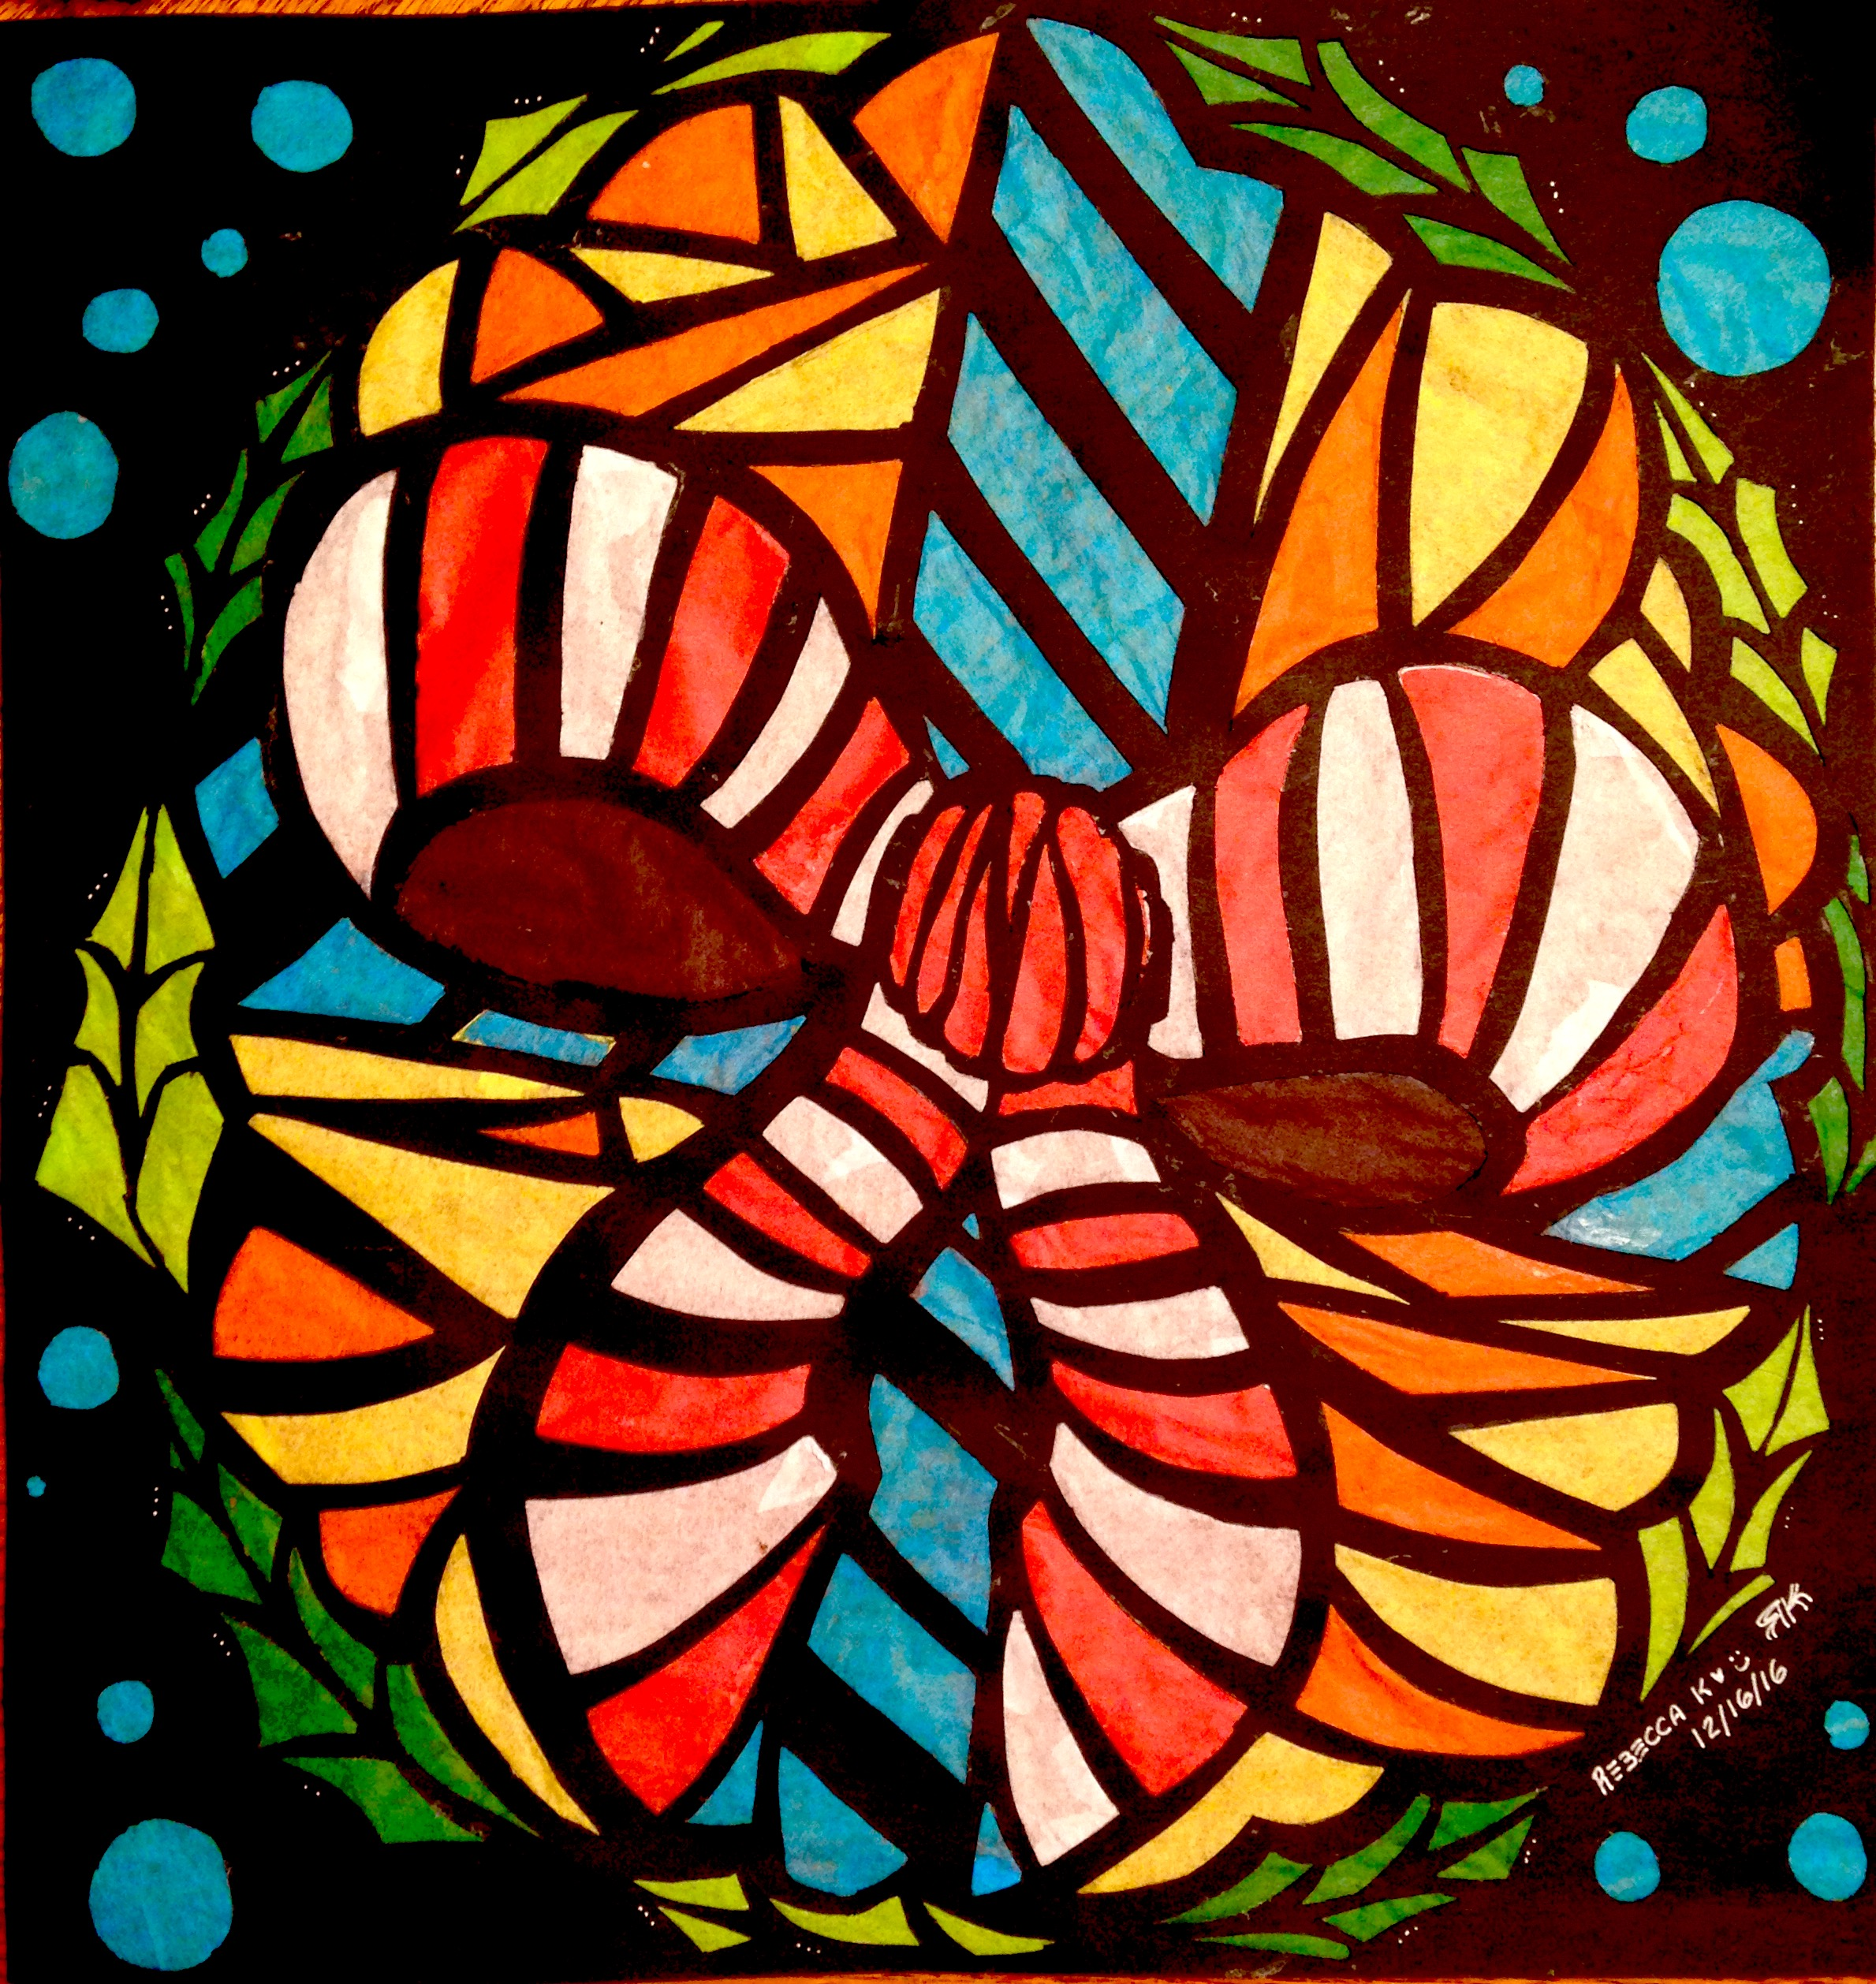 Tissue Paper Stain Glass